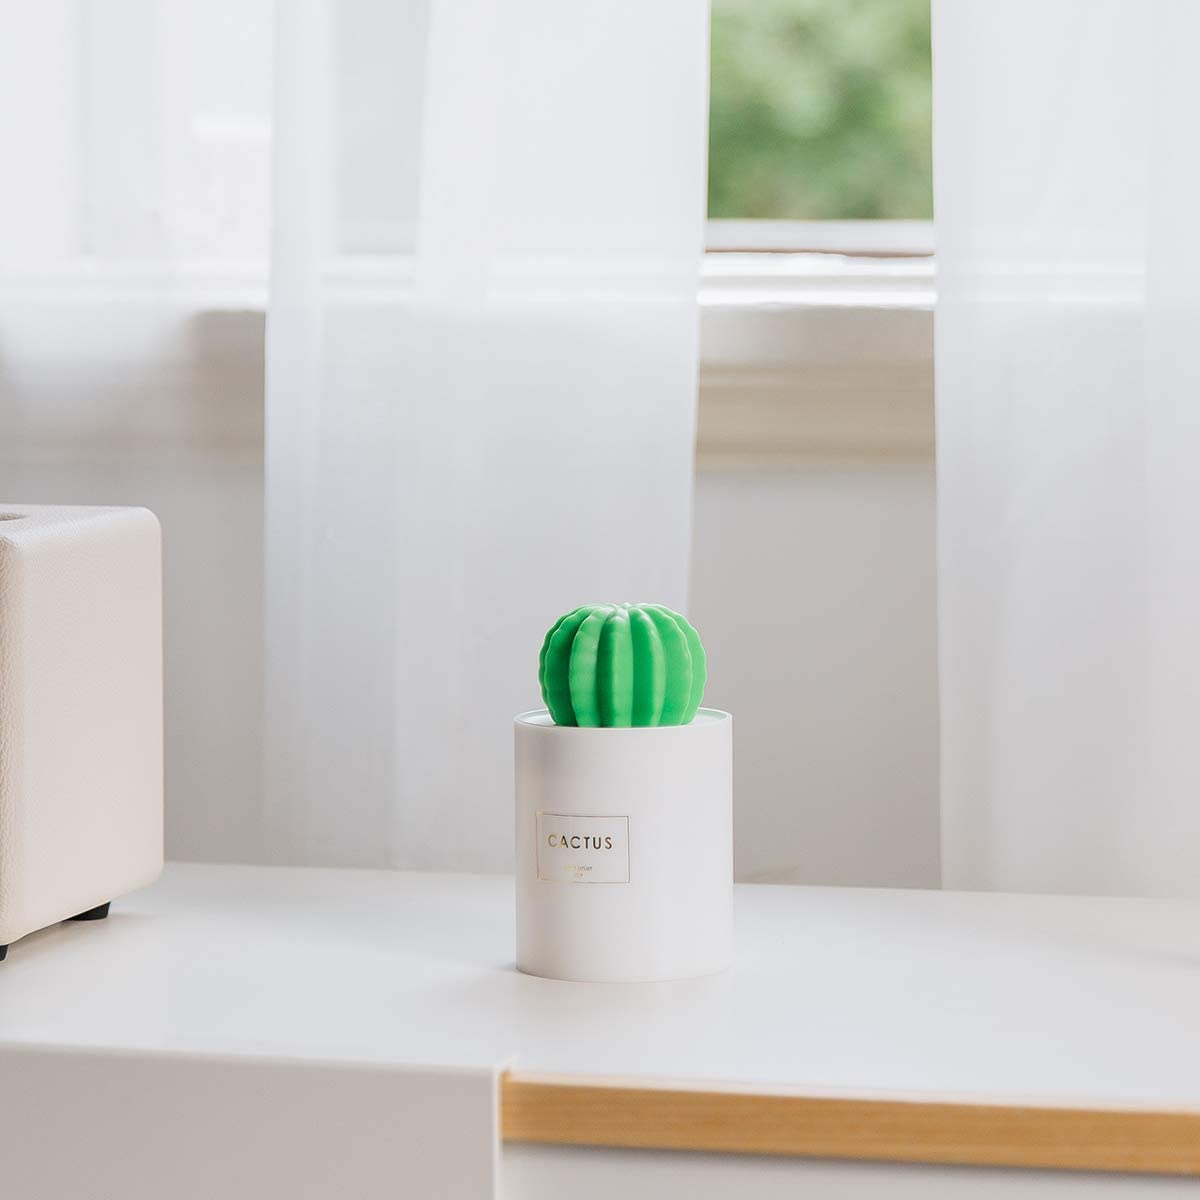 Tobnone Cactus Humidifiers with Night Light, Mini Cool Mist Humidifier 280ml USB Portable Air Diffuser, Auto Shut-Off, Best Gift for Christmas, for Bedroom, Baby, Travel, Desktop, Home, Office